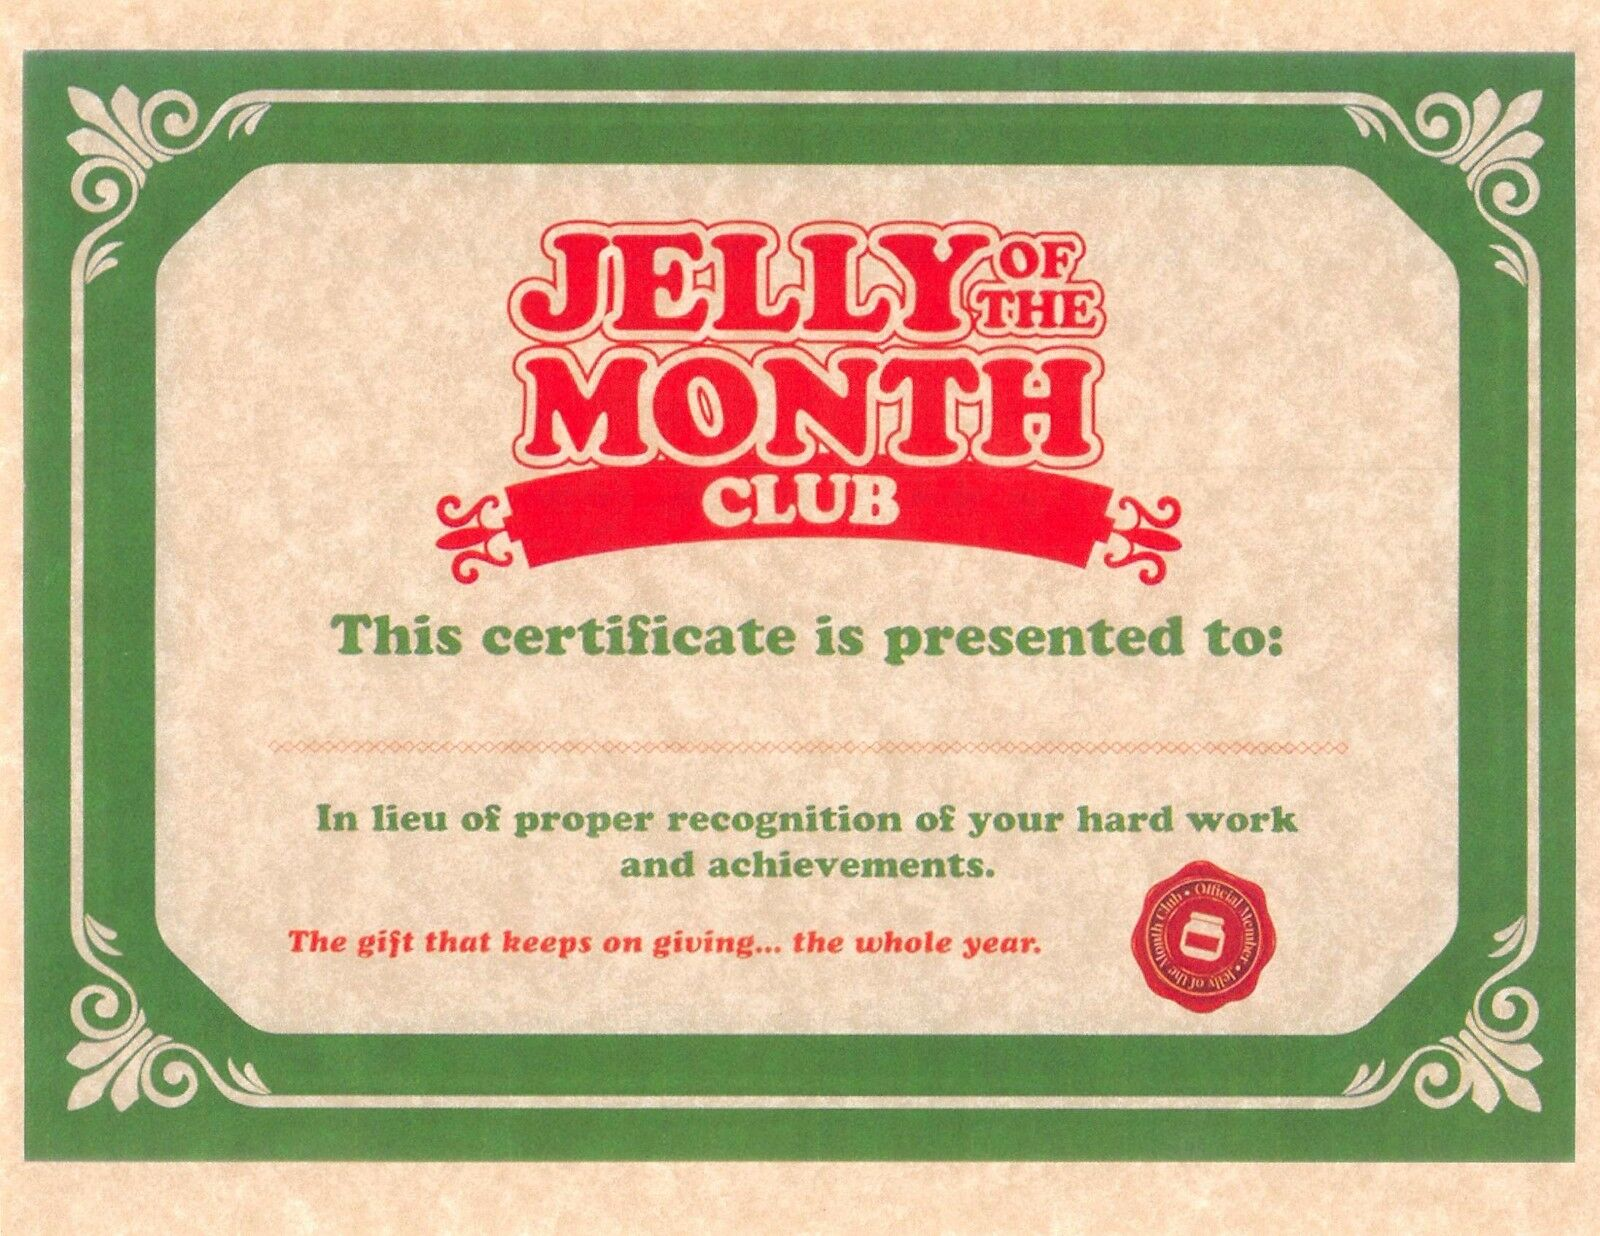 item 2 national lampoons christmas vacation jelly of the month club certificate national lampoons christmas vacation jelly of the month club - Jelly Of The Month Club Christmas Vacation